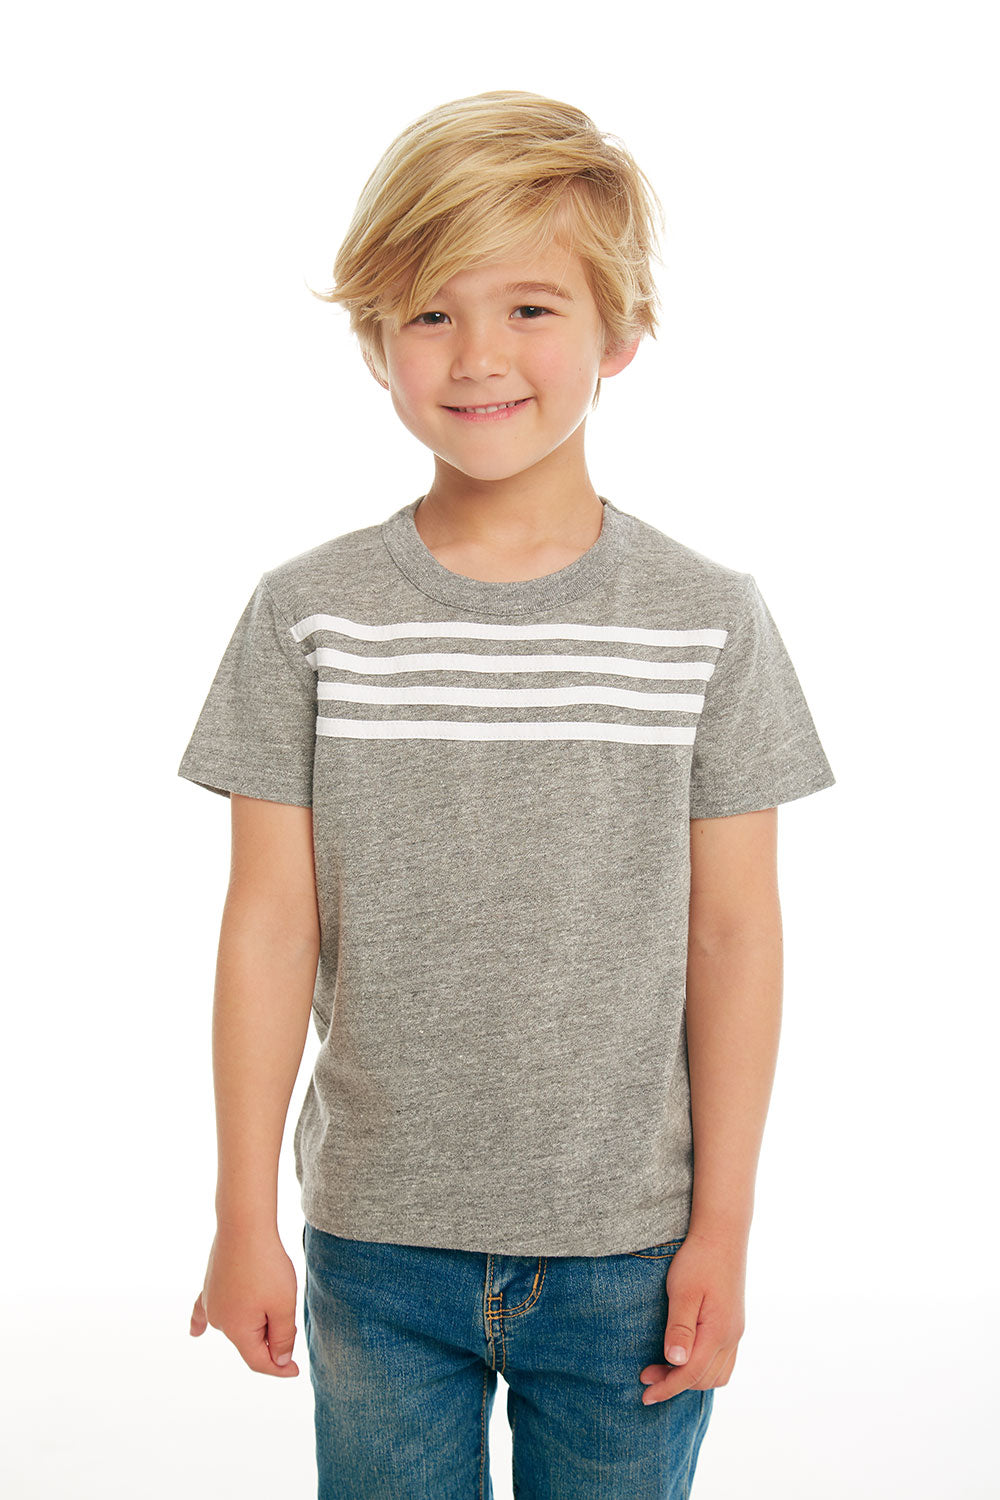 Boys Triblend Jersey Short Sleeve Tee with Strappings BOYS chaserbrand4.myshopify.com